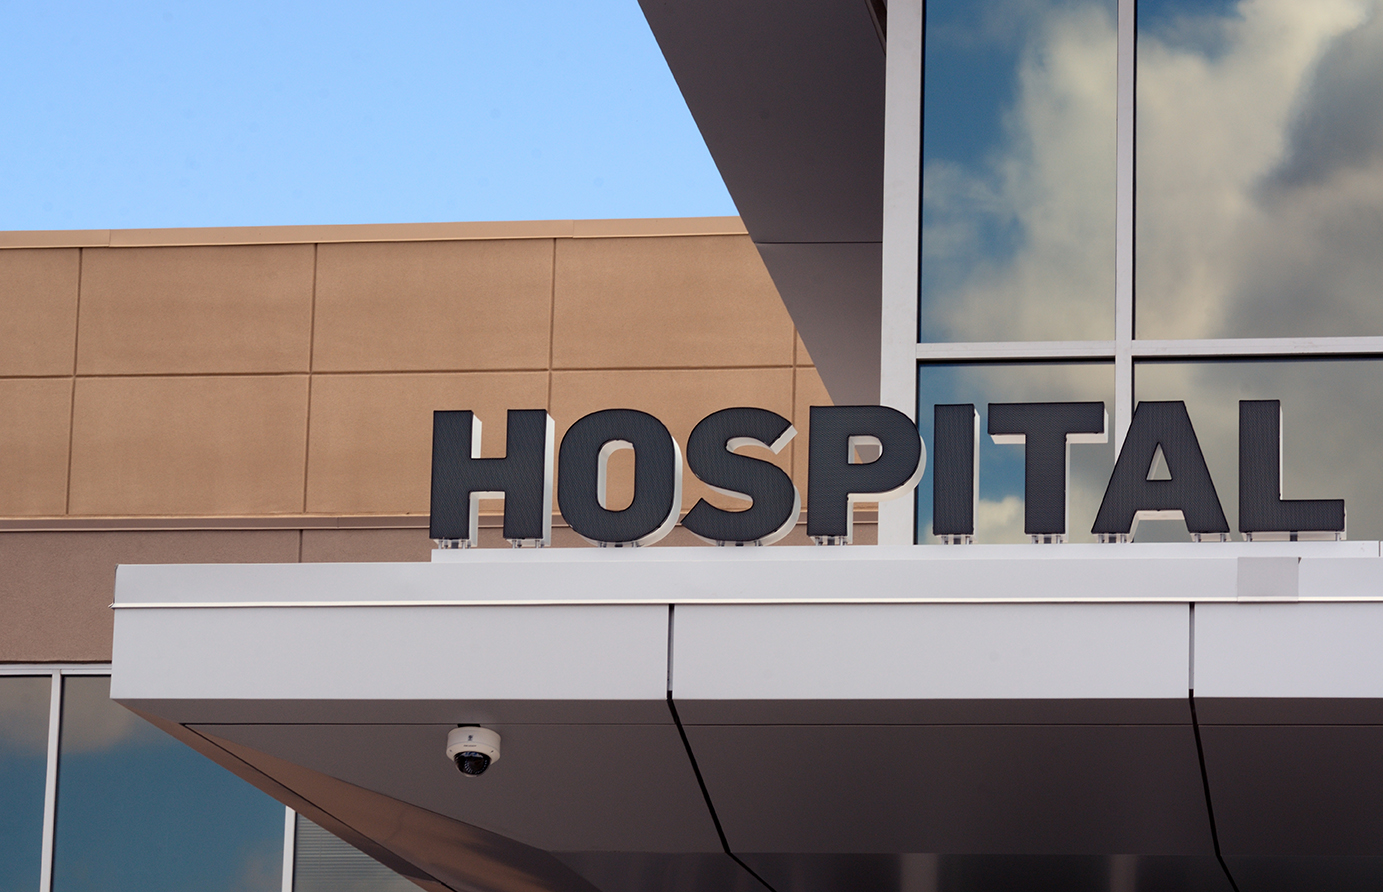 Micro-Hospital Real Estate: Six Key Considerations